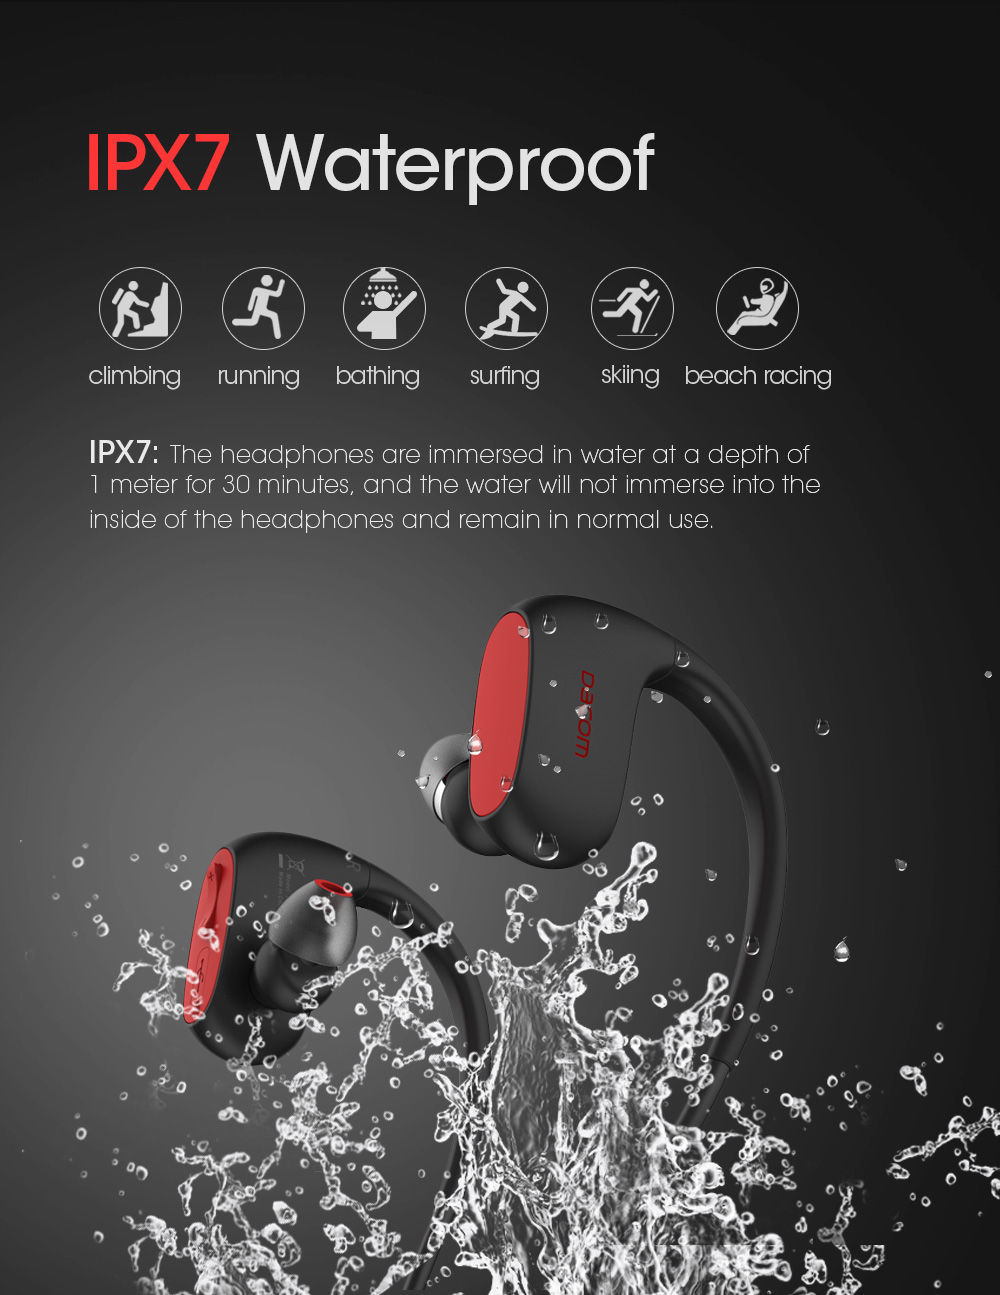 81fabc6778c ... DACOM L05 Sports Bluetooth Headphones Bass IPX7 Waterproof Wireless  Earphones Stereo Headset with Microphone for iPhone ...